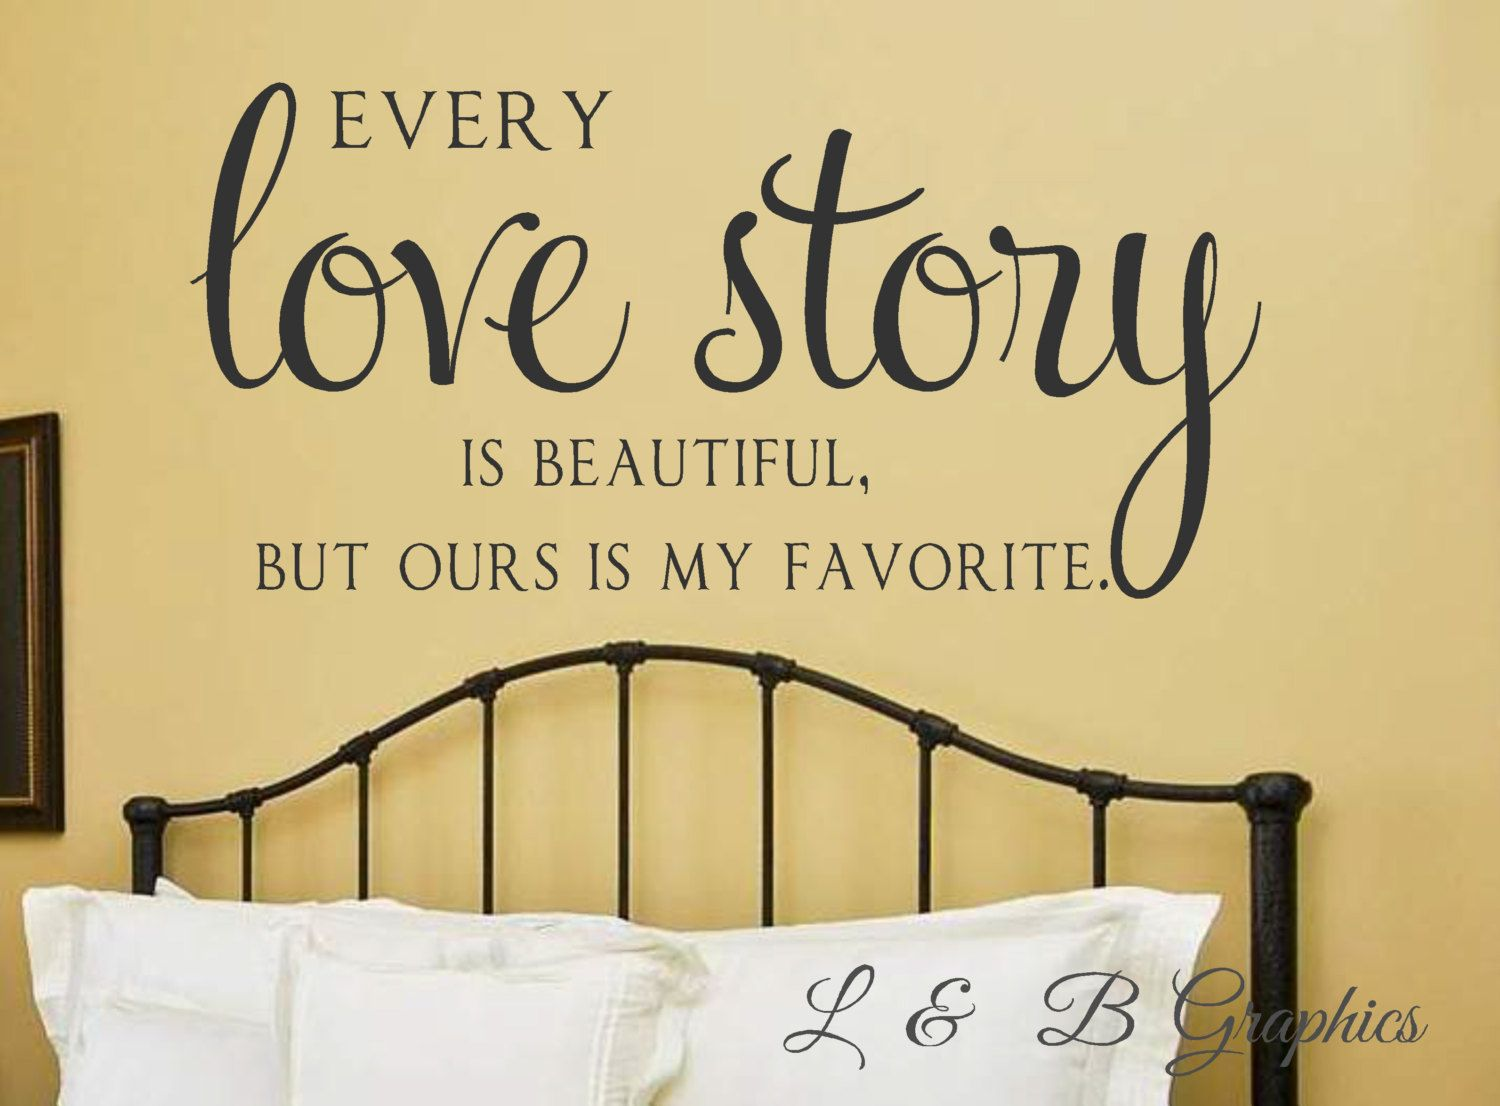 Every Love Story is Beautiful-Vinyl Wall Decal-Lettering- Bedroom ...